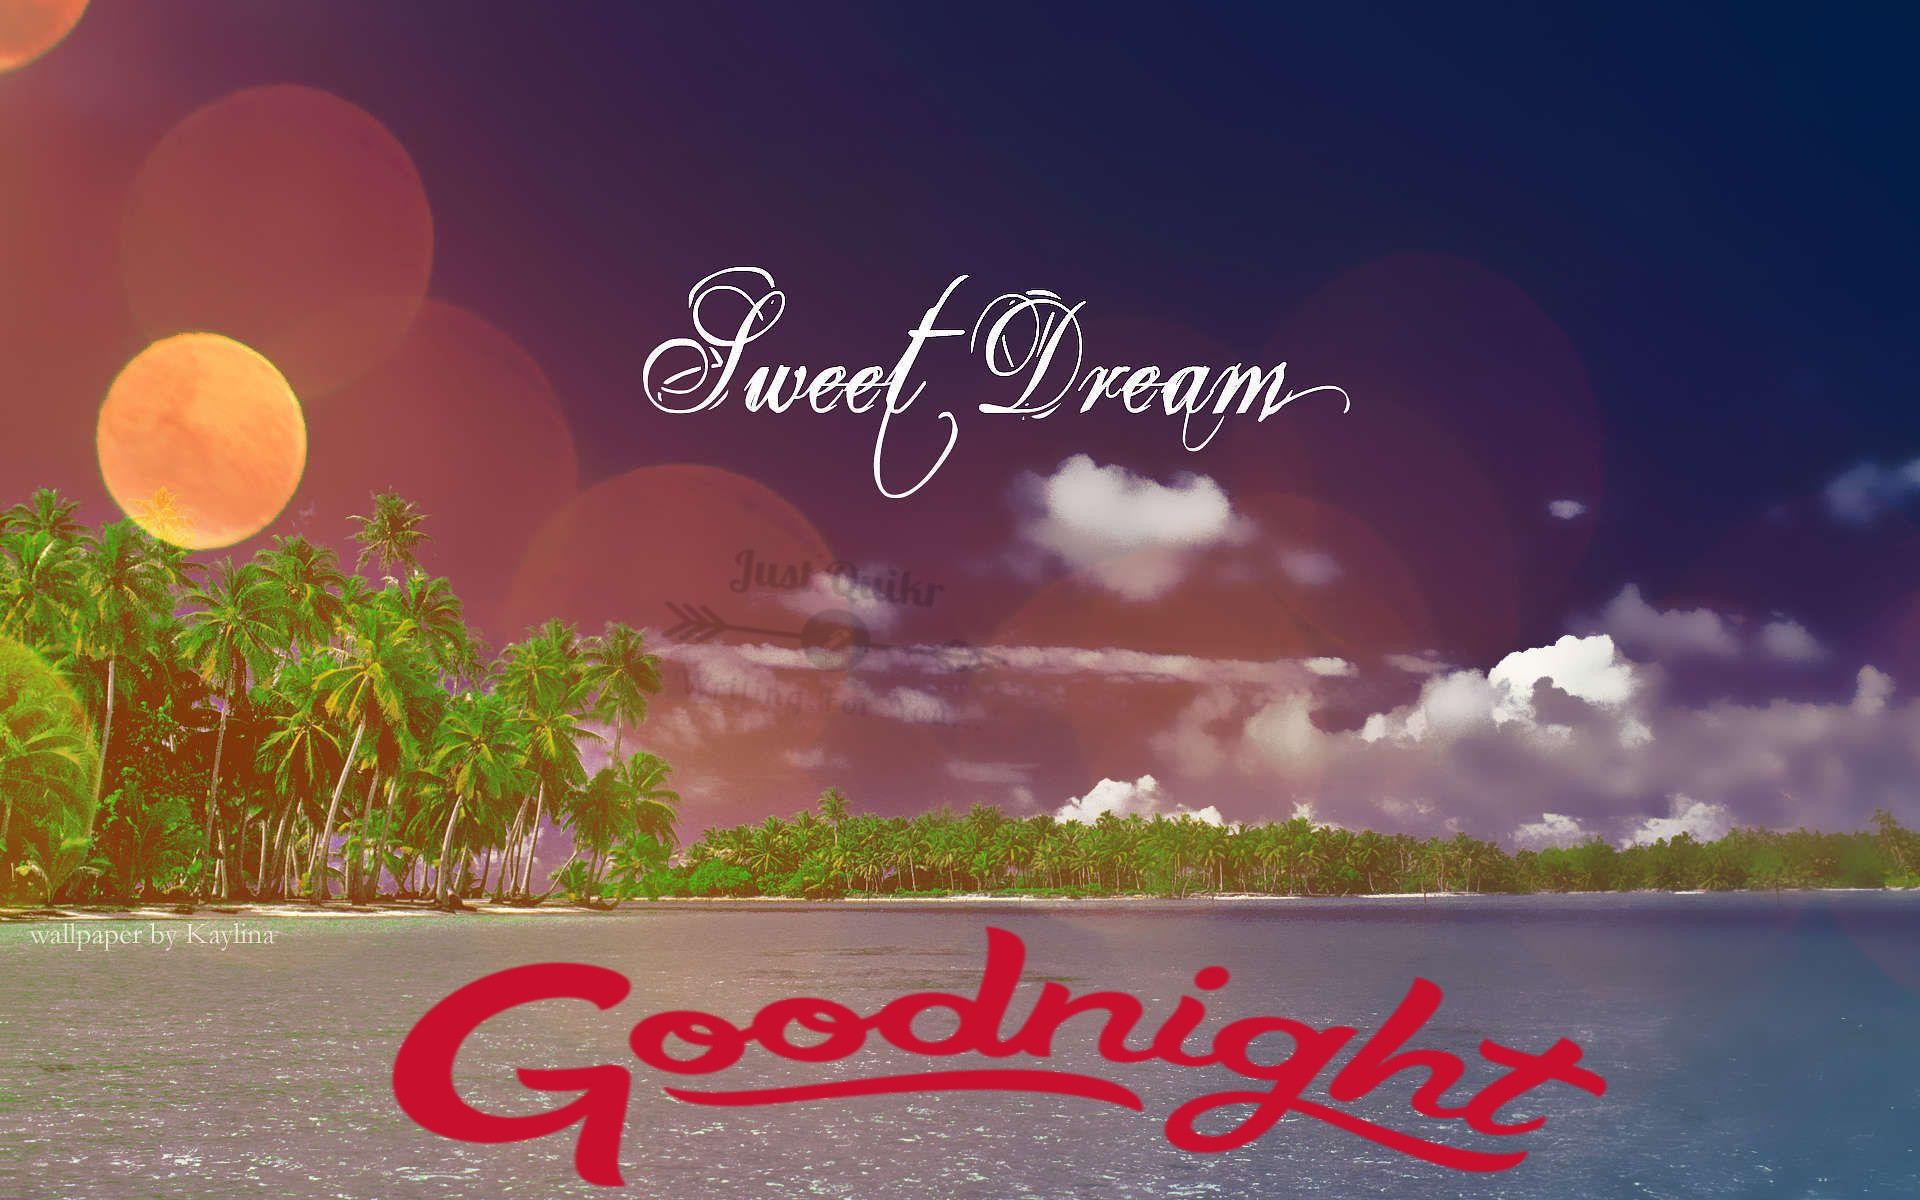 Good Night HD Pics Images For Dear